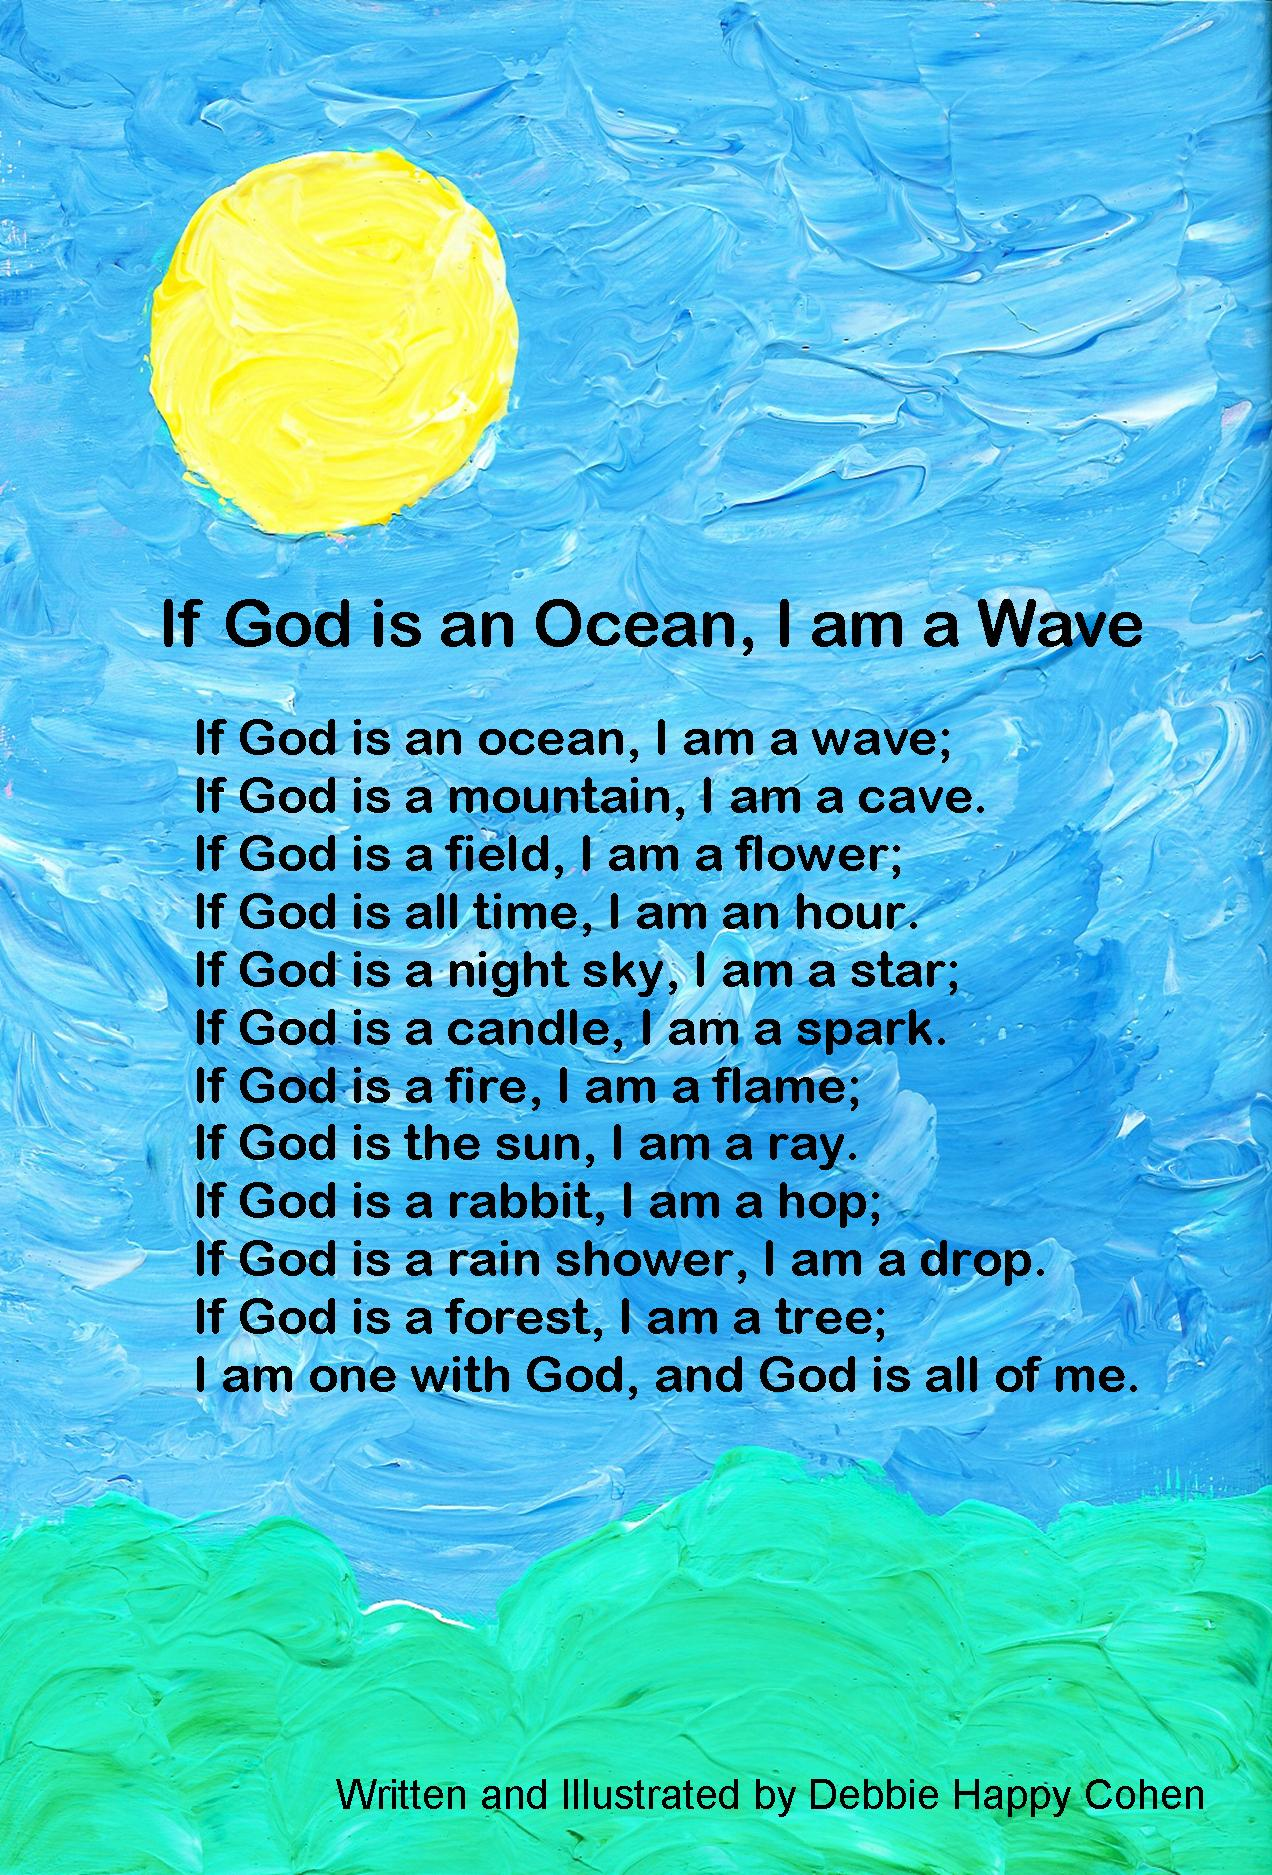 postcard-front-if-god-is-an-ocean-sun-with-waves-with-poem-size-4-25-x ...